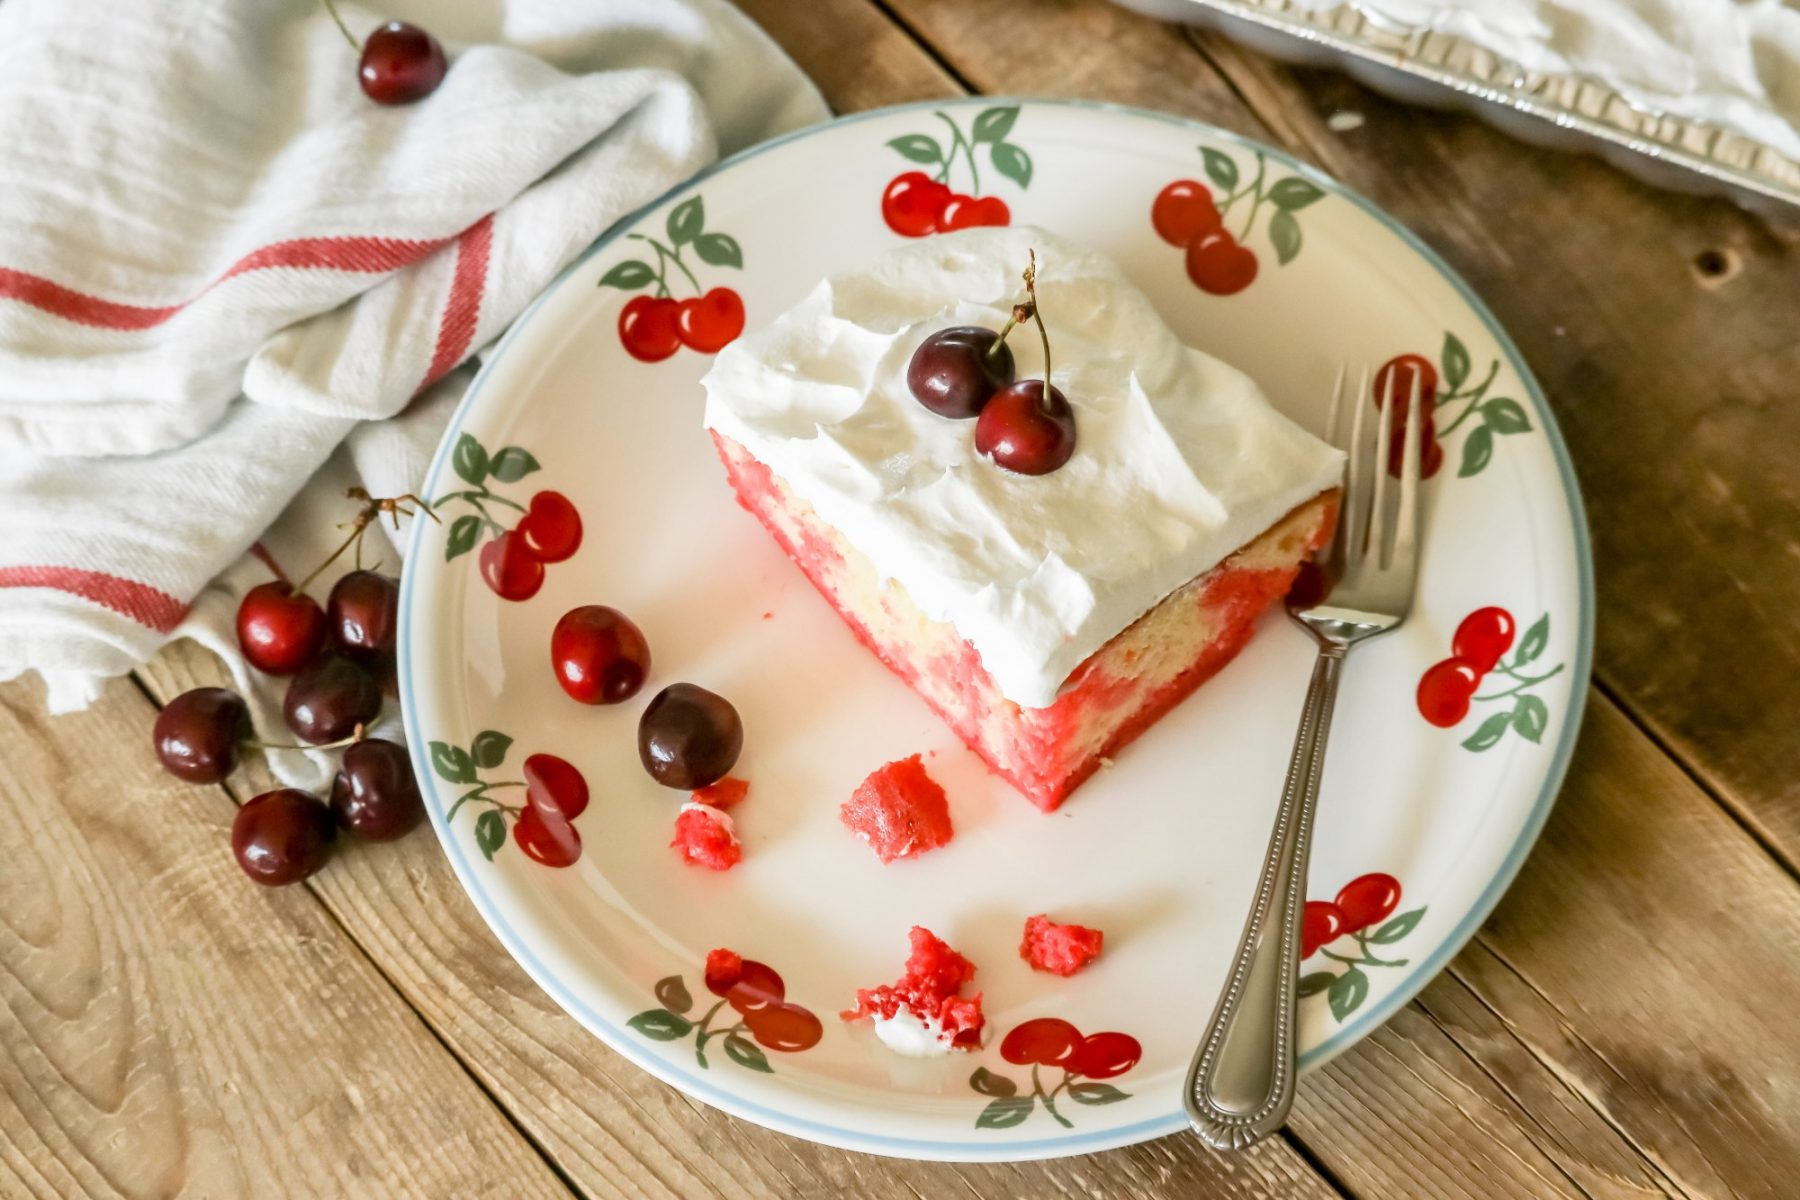 A slice of Cherry Jello Poke Cake on a plate